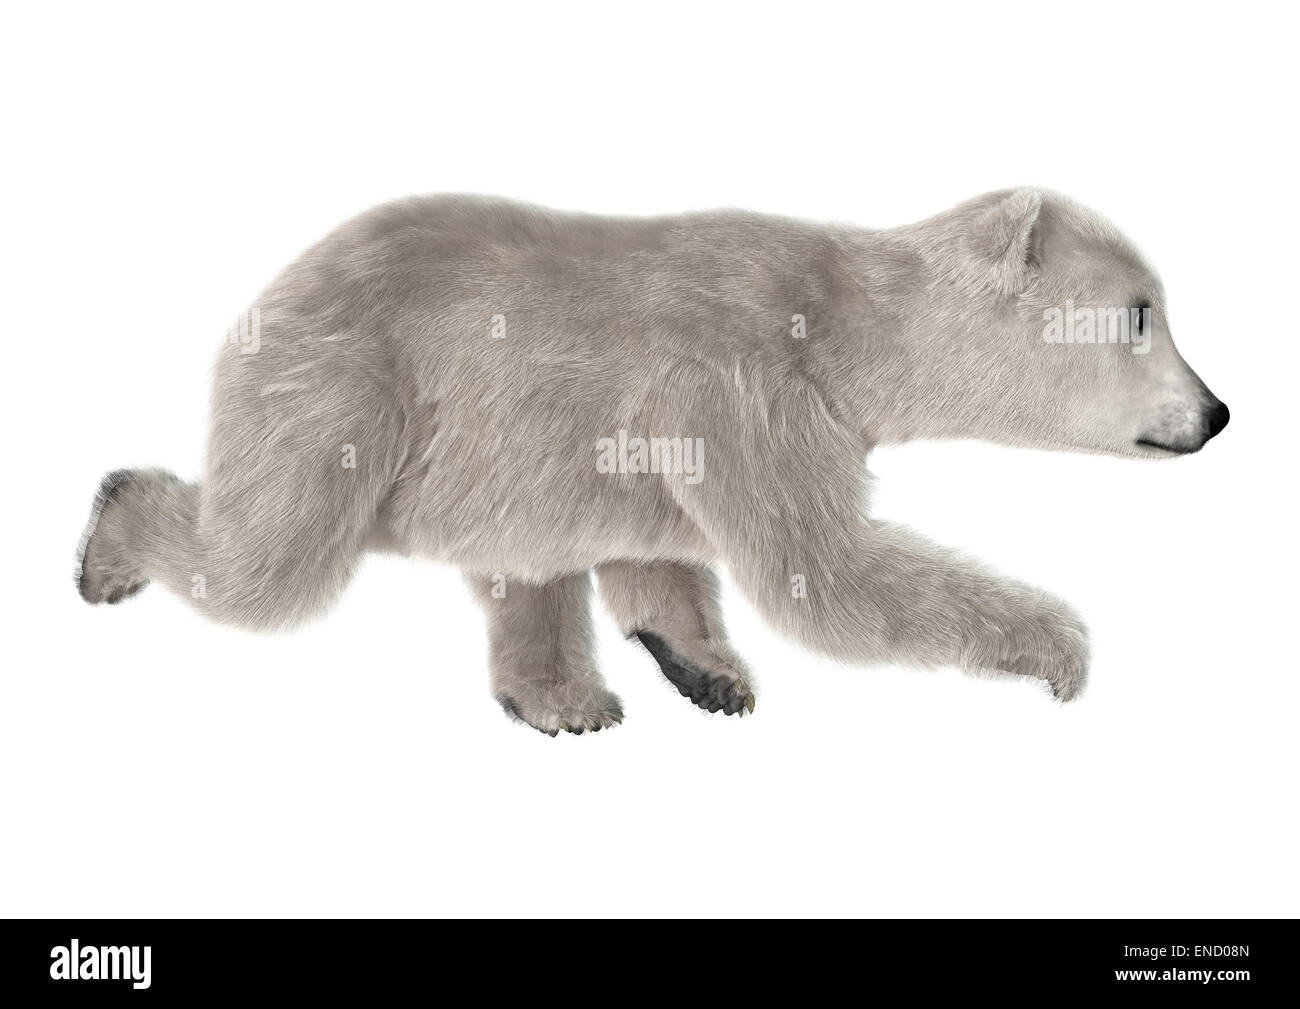 67b12f97f4a 3D digital render of a polar bear cub running isolated on white background  - Stock Image